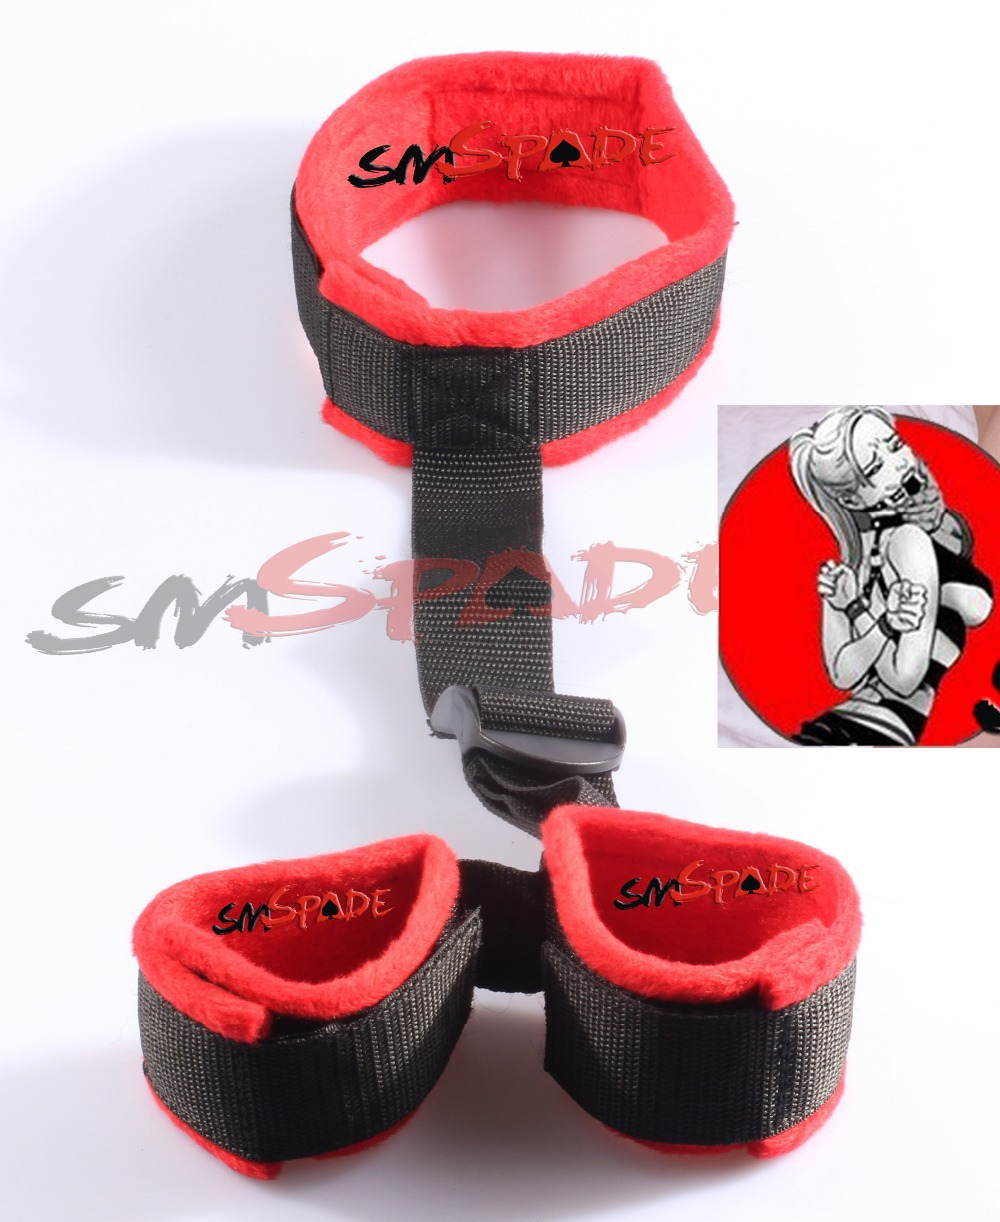 Free Shipping Velvet Wrist Cuffs to Collar Restraint Set Adult Sex Toy Bedroom Game Sex Tools<br><br>Aliexpress